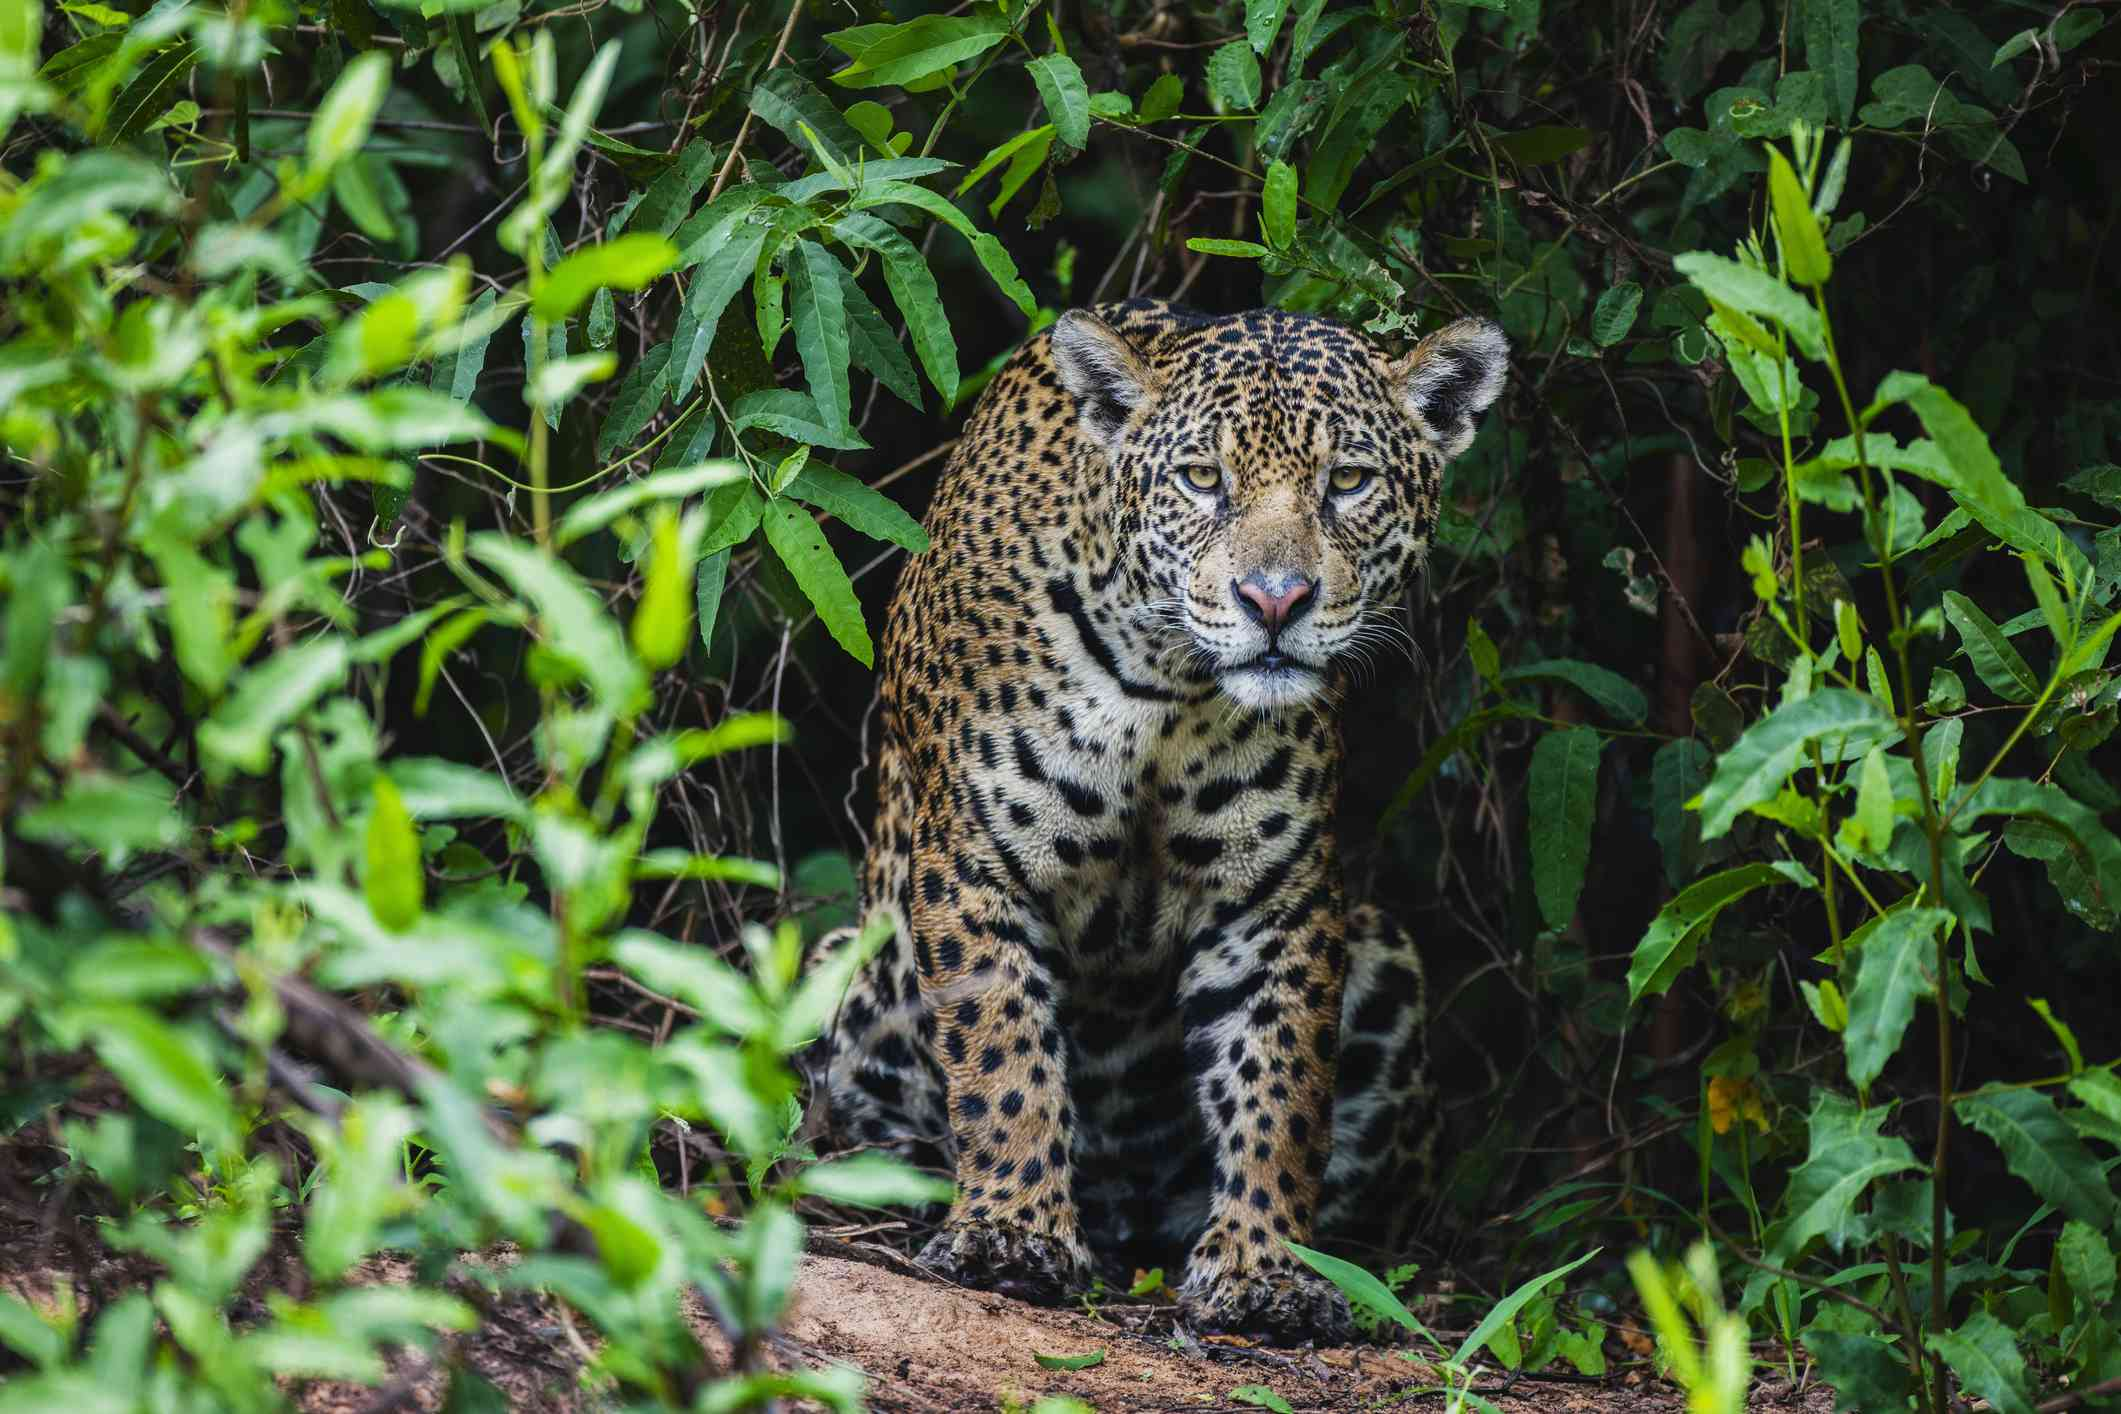 A spotted jaguar walking out of thick, green vegetation in South America